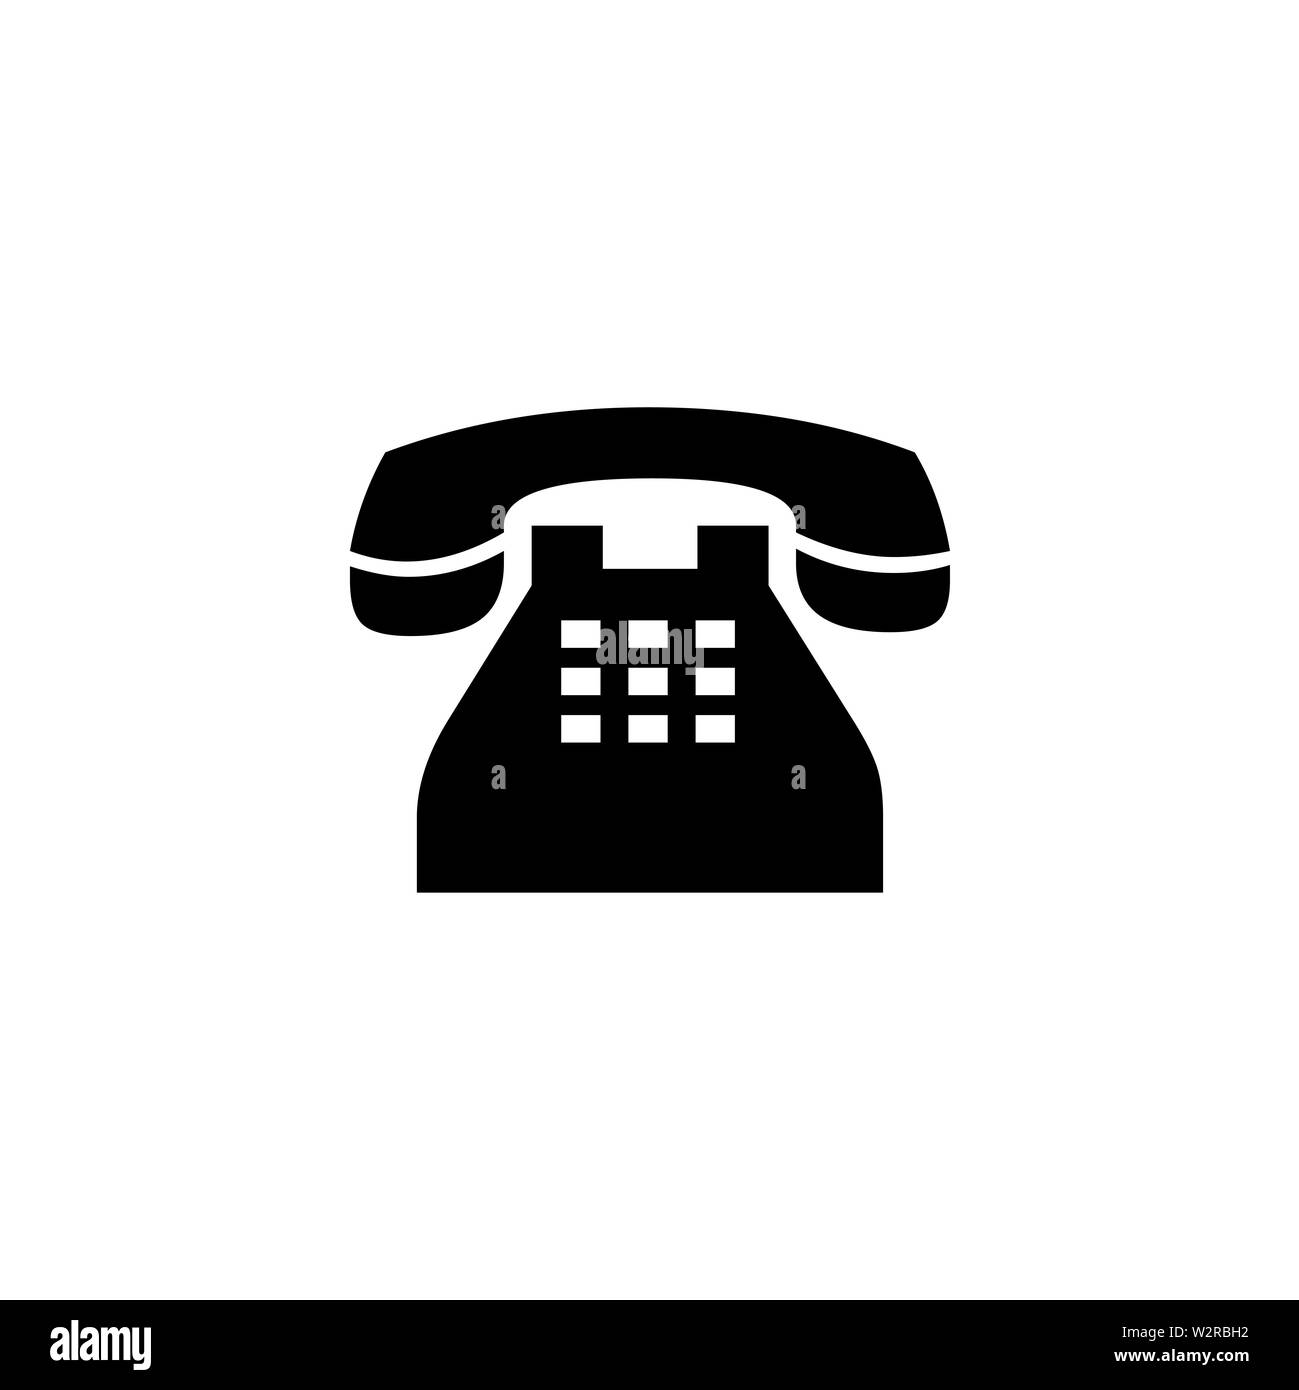 Telephone Icon In Flat Style Vector For Apps, UI, Websites. Black Icon Vector Illustration. Stock Photo